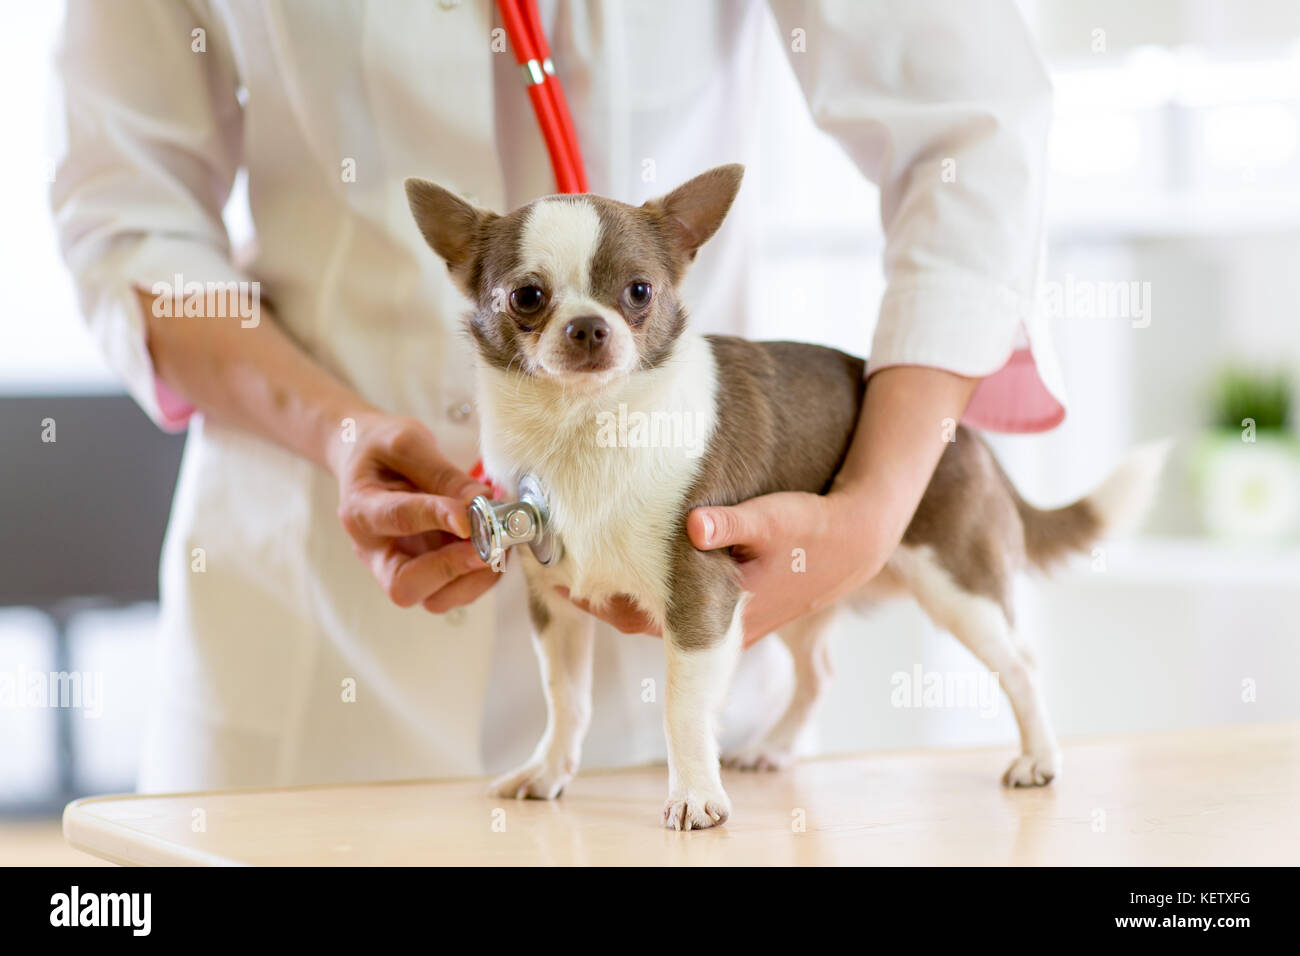 Veterinarian doctor using stethoscope during examination in veterinary clinic. Dog terrier in veterinary clinic Stock Photo